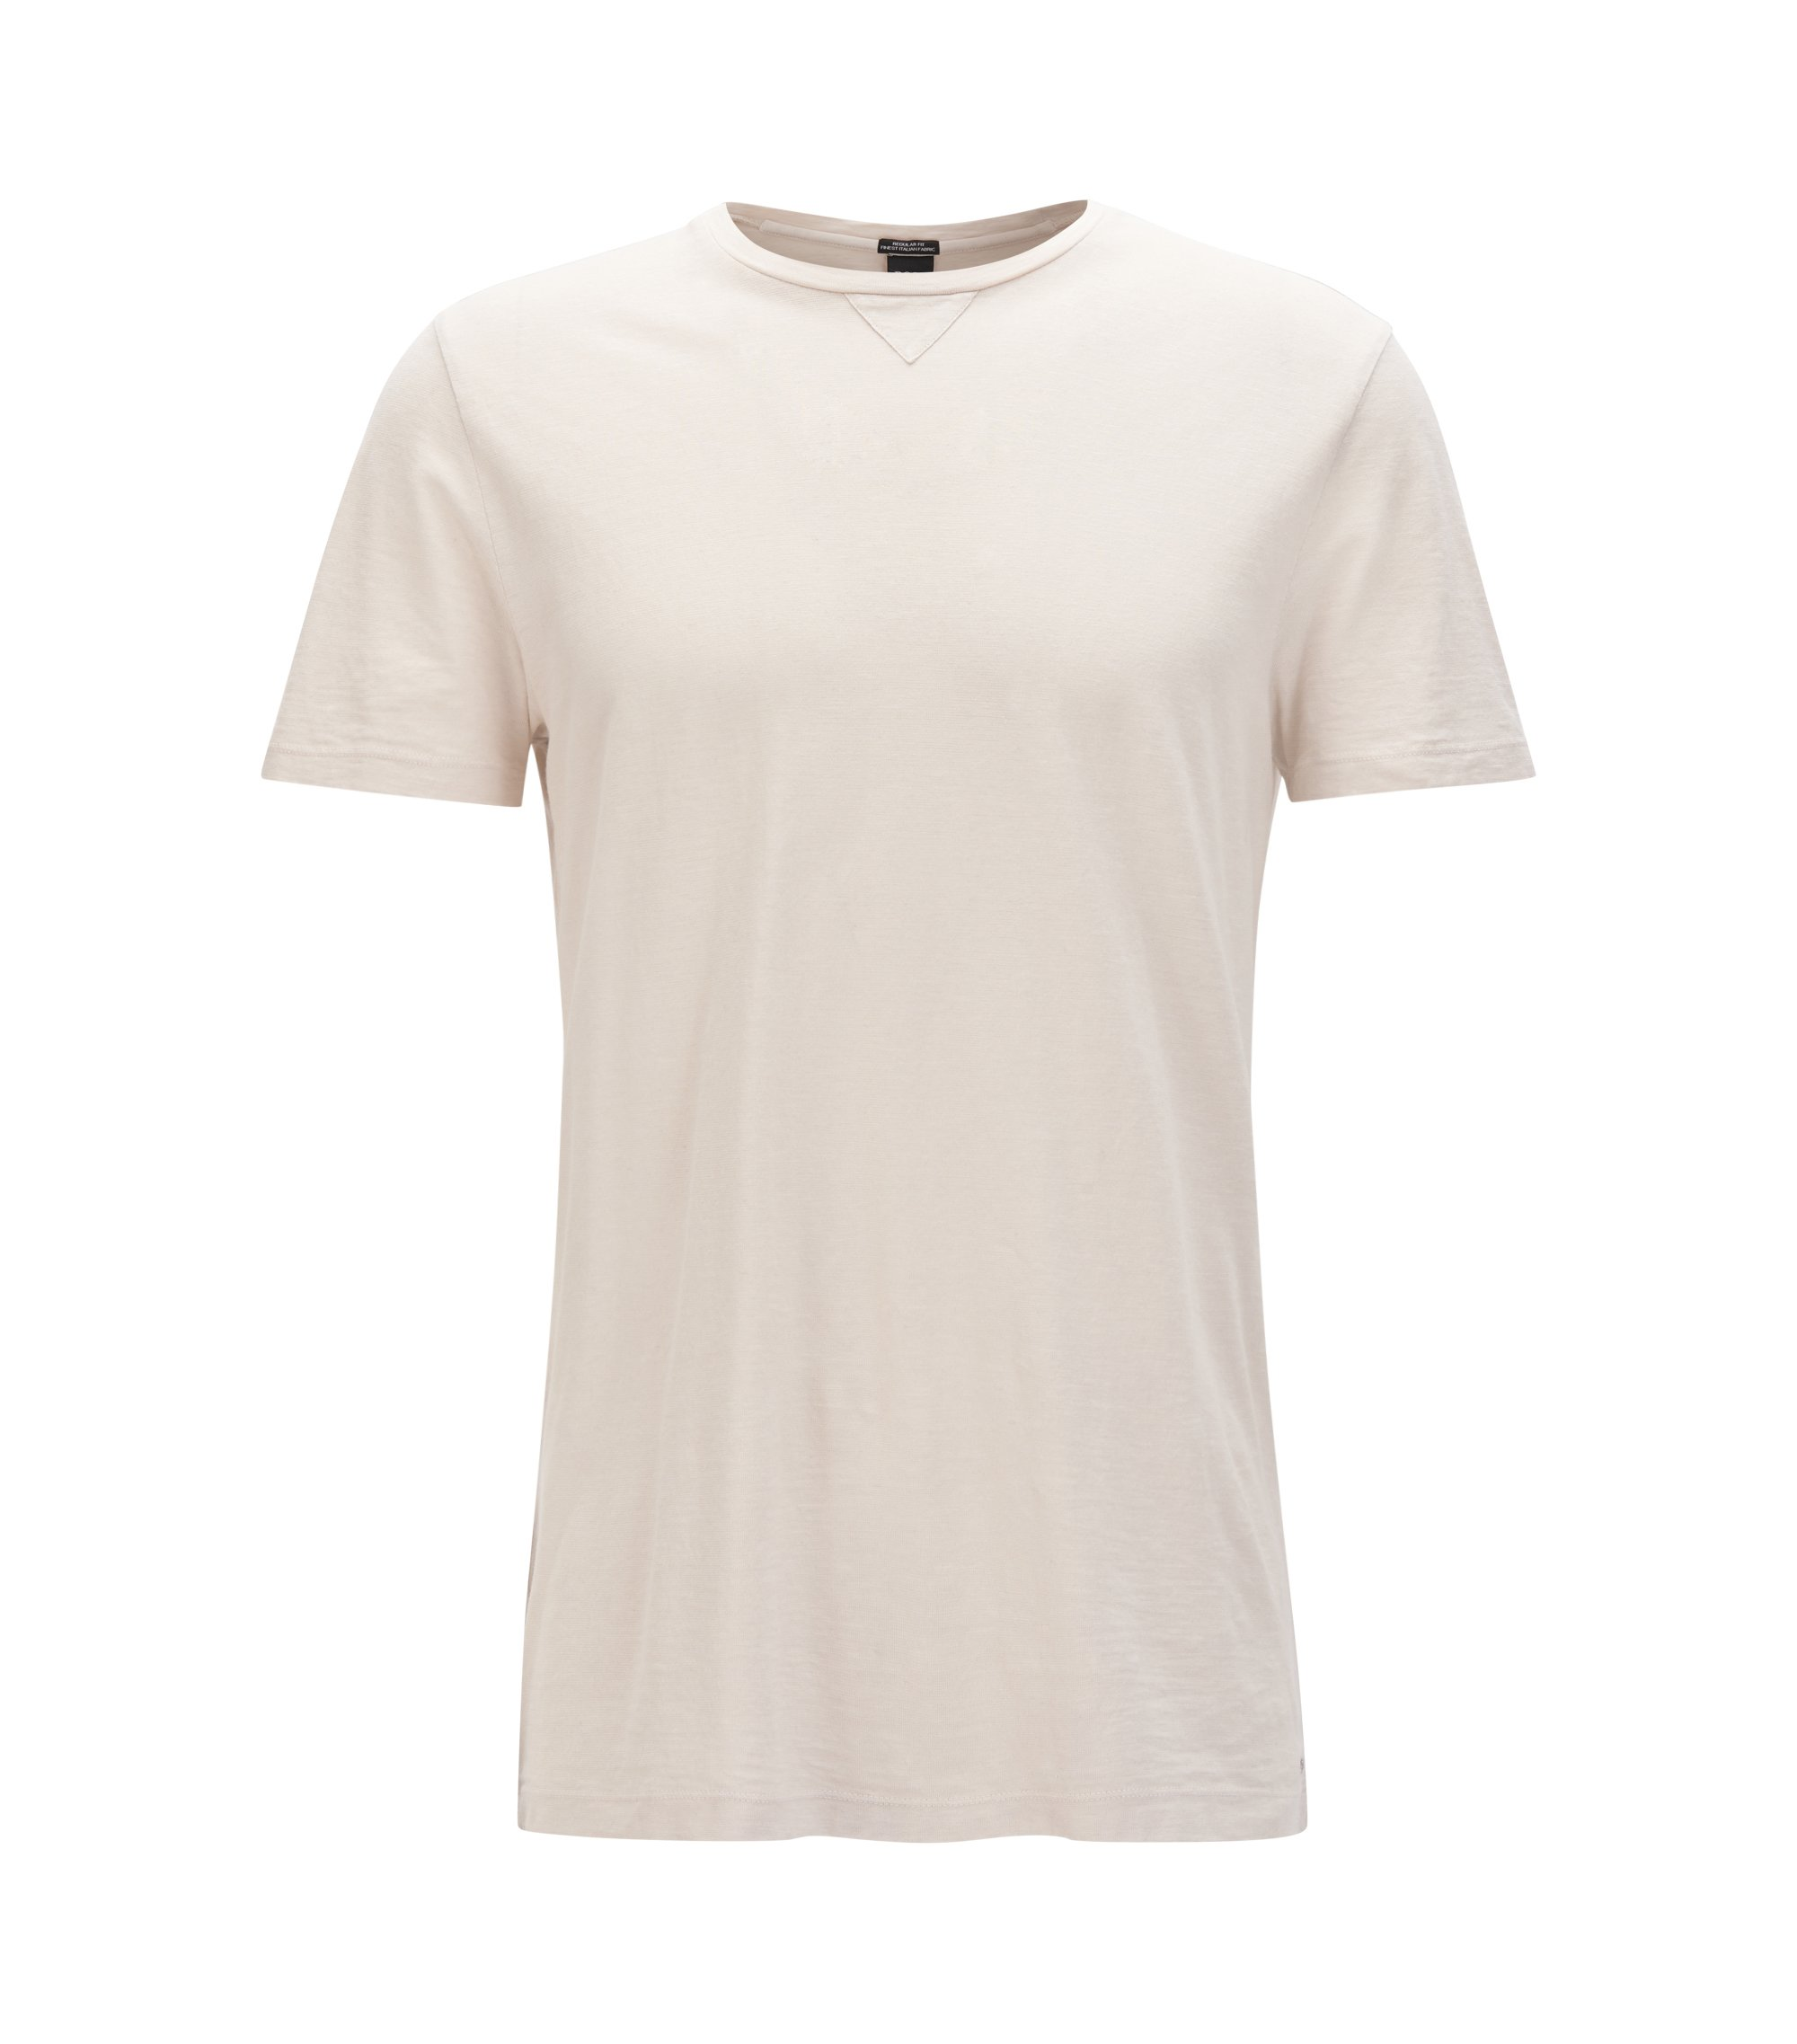 Crew-neck T-shirt in an Italian cotton blend, Natural